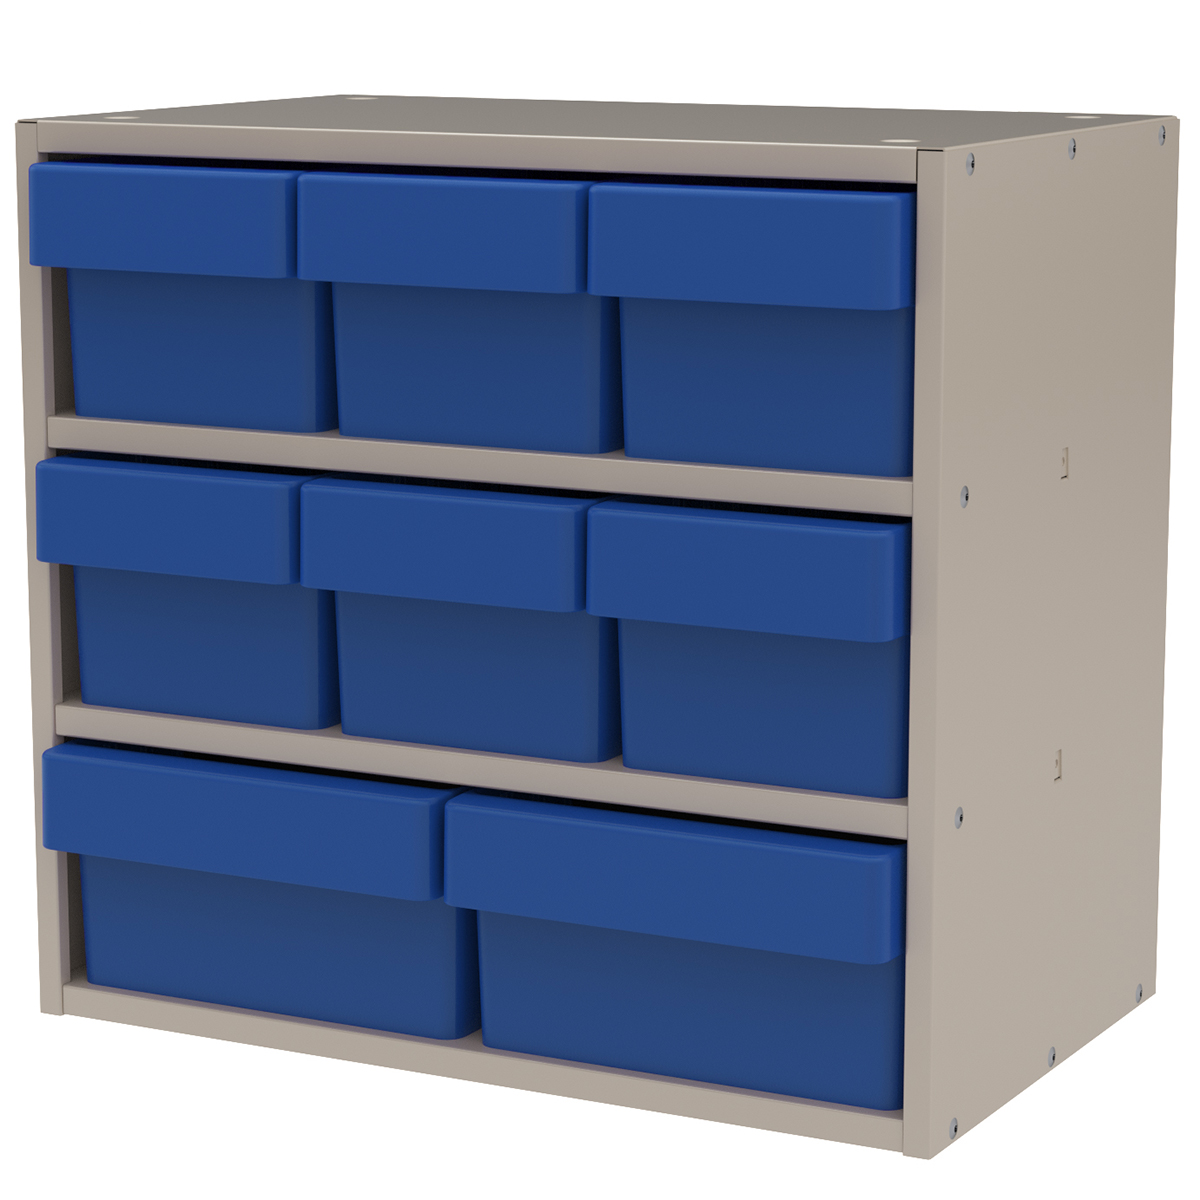 Item DISCONTINUED by Manufacturer.  Modular Cabinet, 18x11x16, 8 Drawers, Putty/Blue (AD1811PASTBLU).  This item sold in carton quantities of 1.